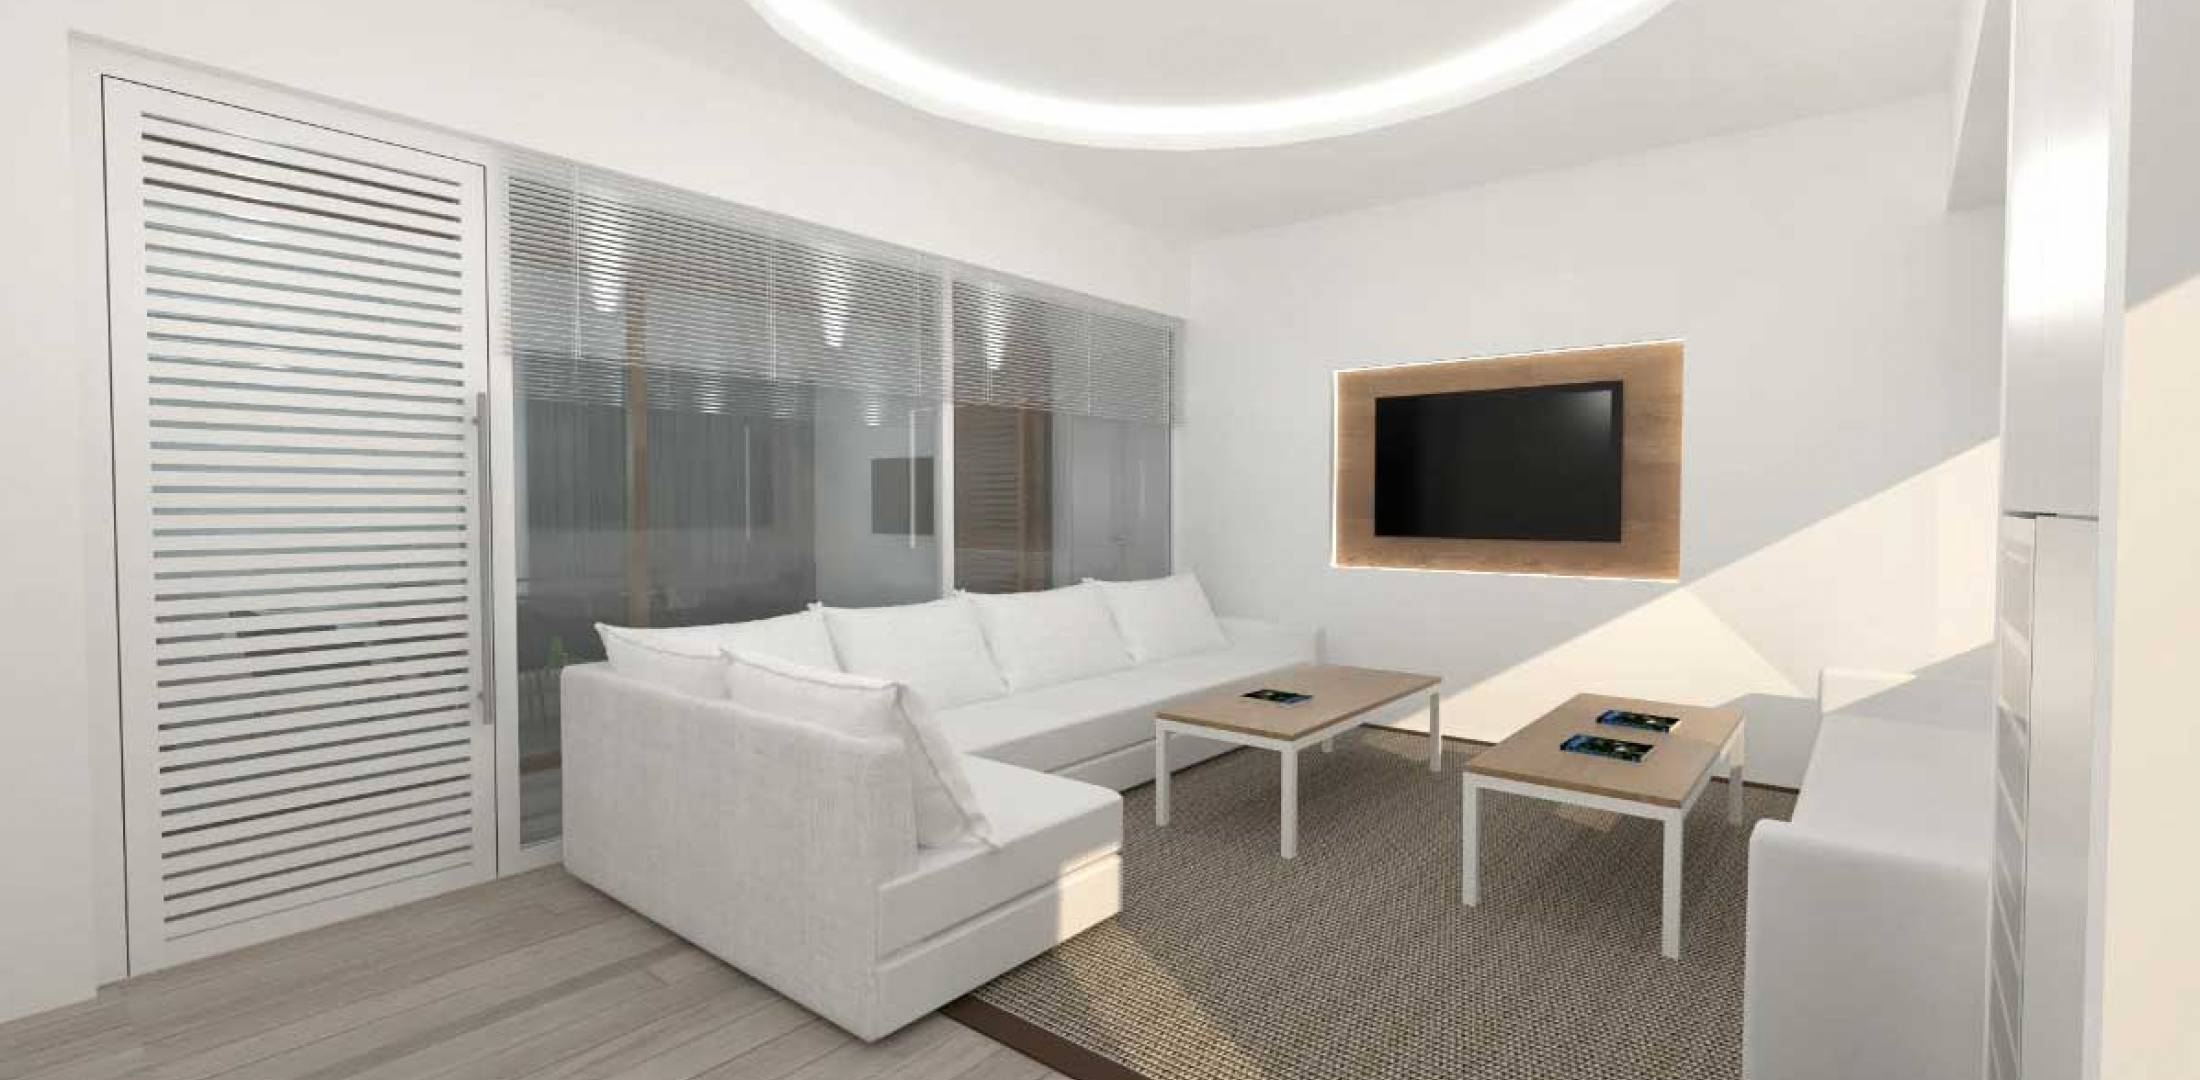 Artis rendering of planned lounge at Omni's Faro Airport